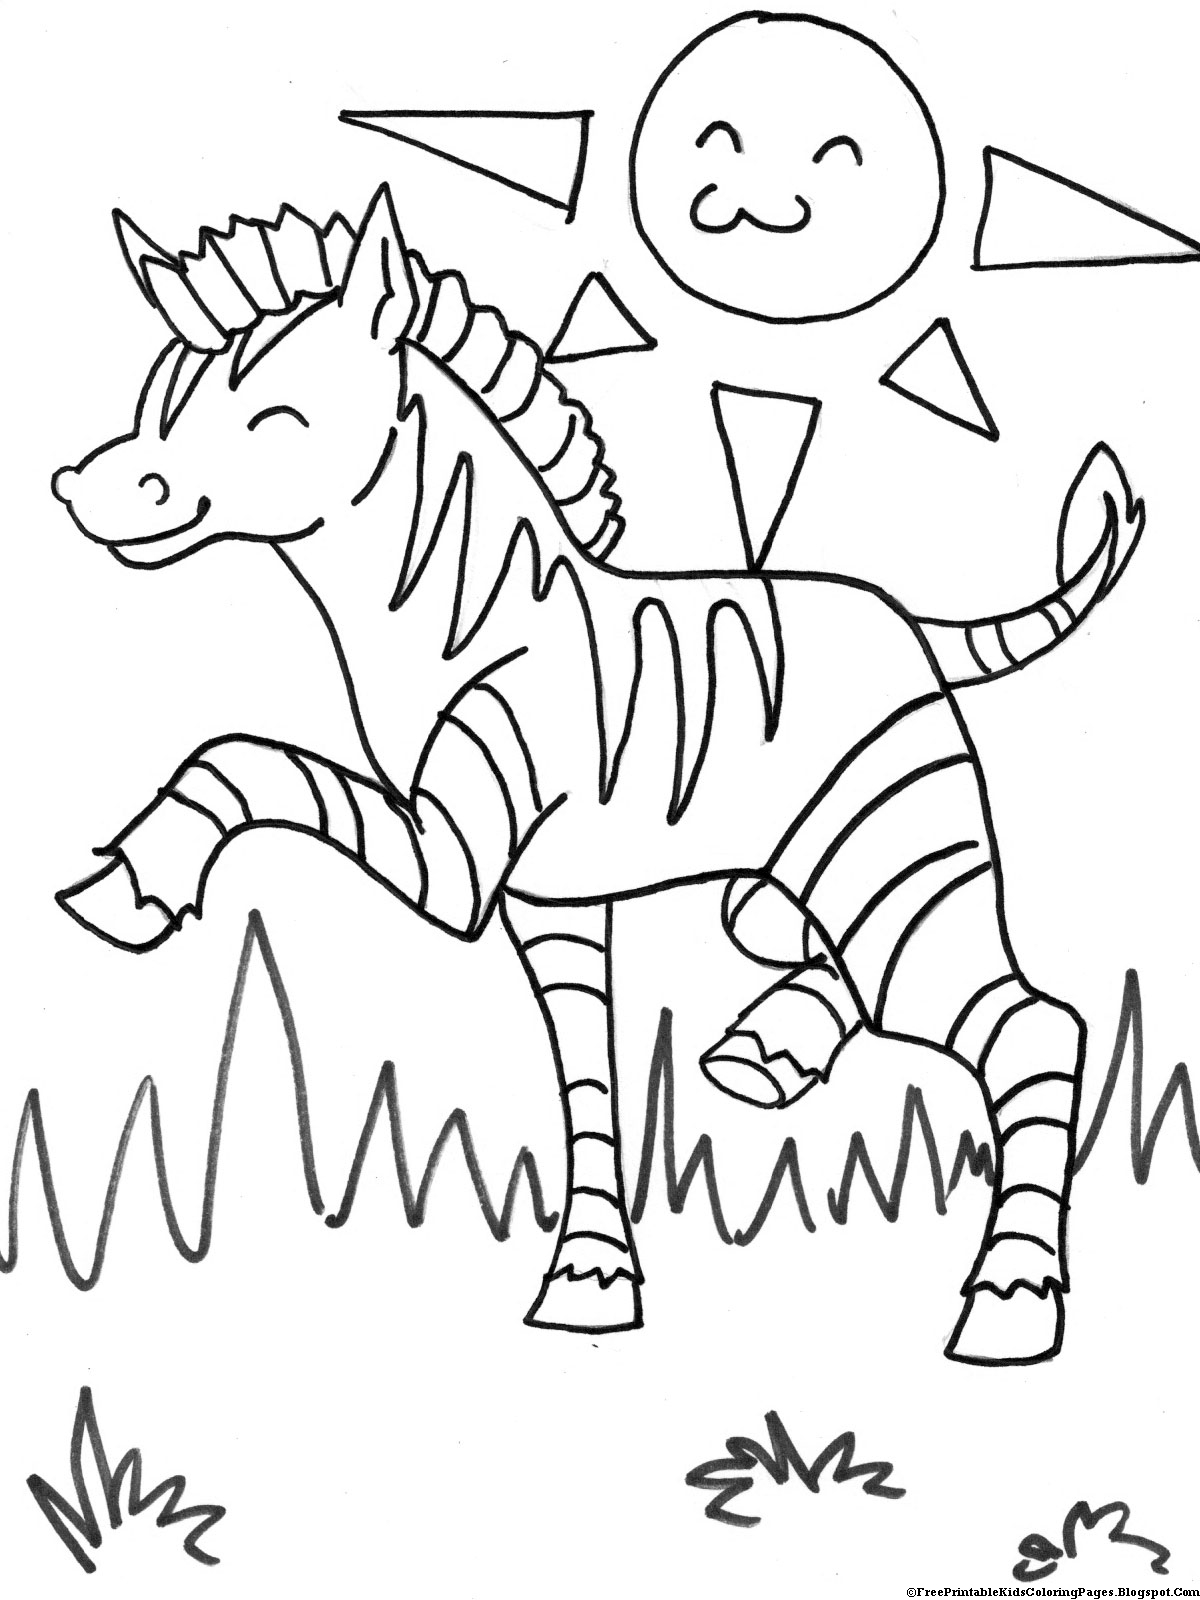 coloring templates for kids free printable tangled coloring pages for kids templates for kids coloring